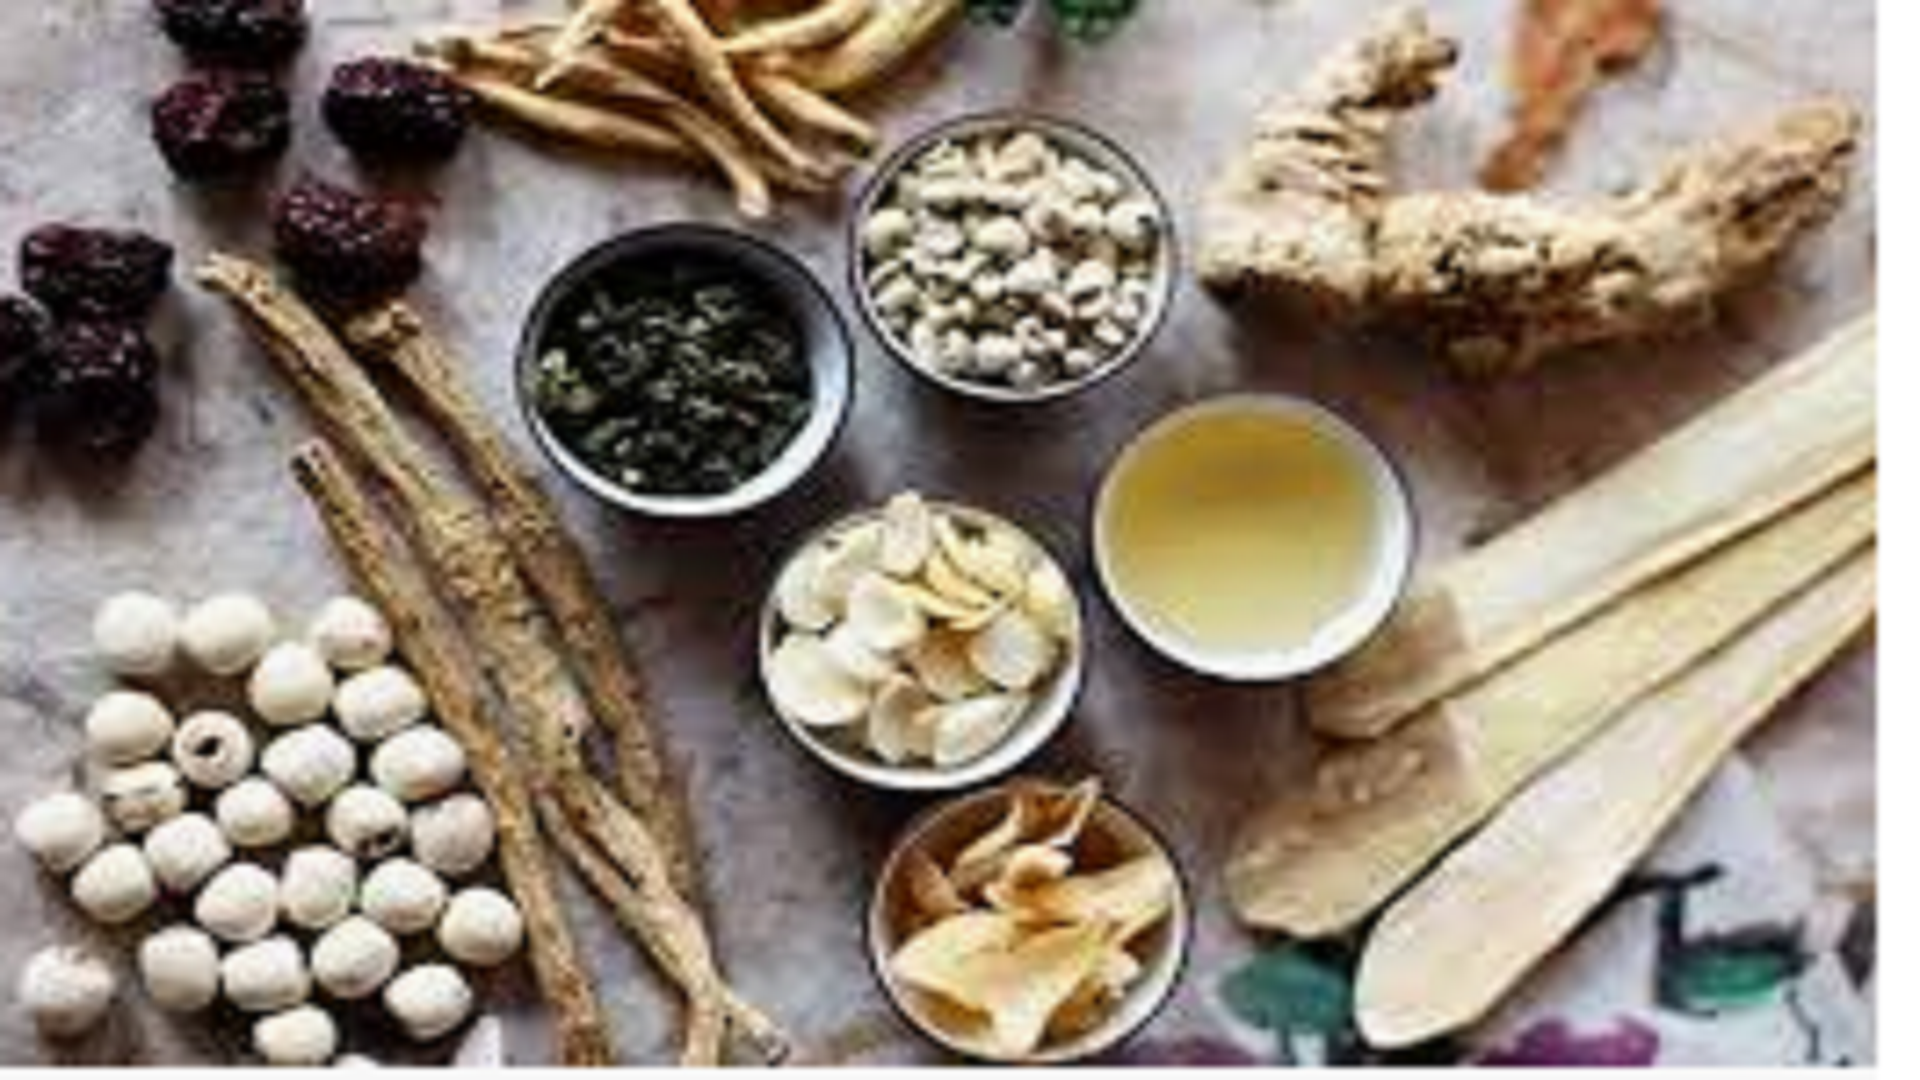 Clinical Application Of Combined Traditional Chinese Medicine (Tcm) For Warm Compression Of Umbilical Region In Promoting Postoperative Recovery Of Bowel Function In Patients With Bile Duct Stones